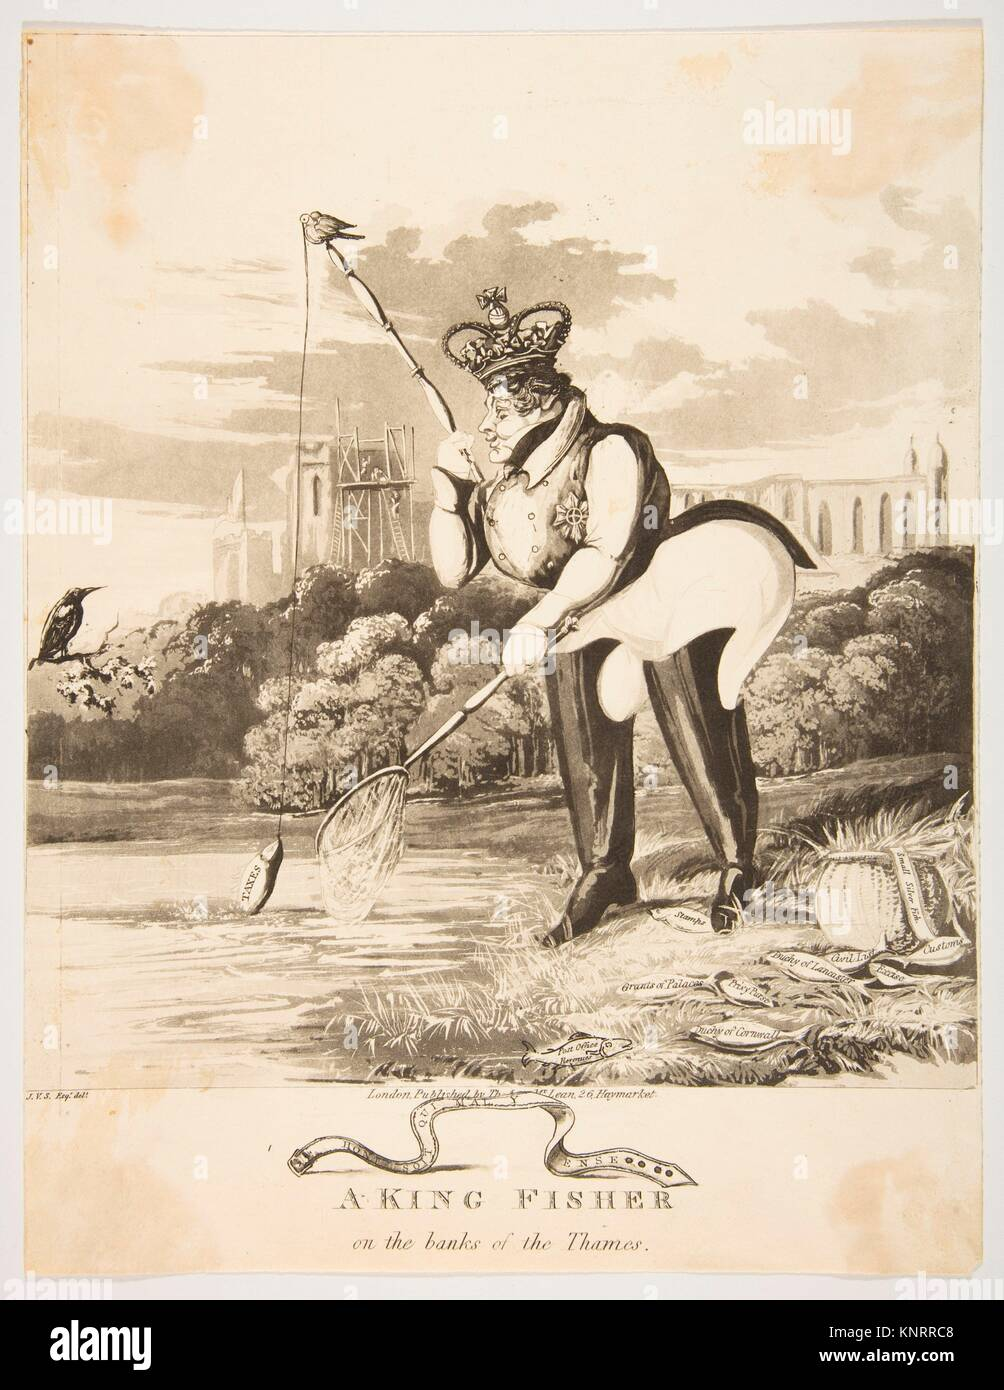 A King Fisher on the Banks of the Thames. Artist: Monogrammist JVS (British, active 1827); Publisher: Thomas McLean - Stock Image